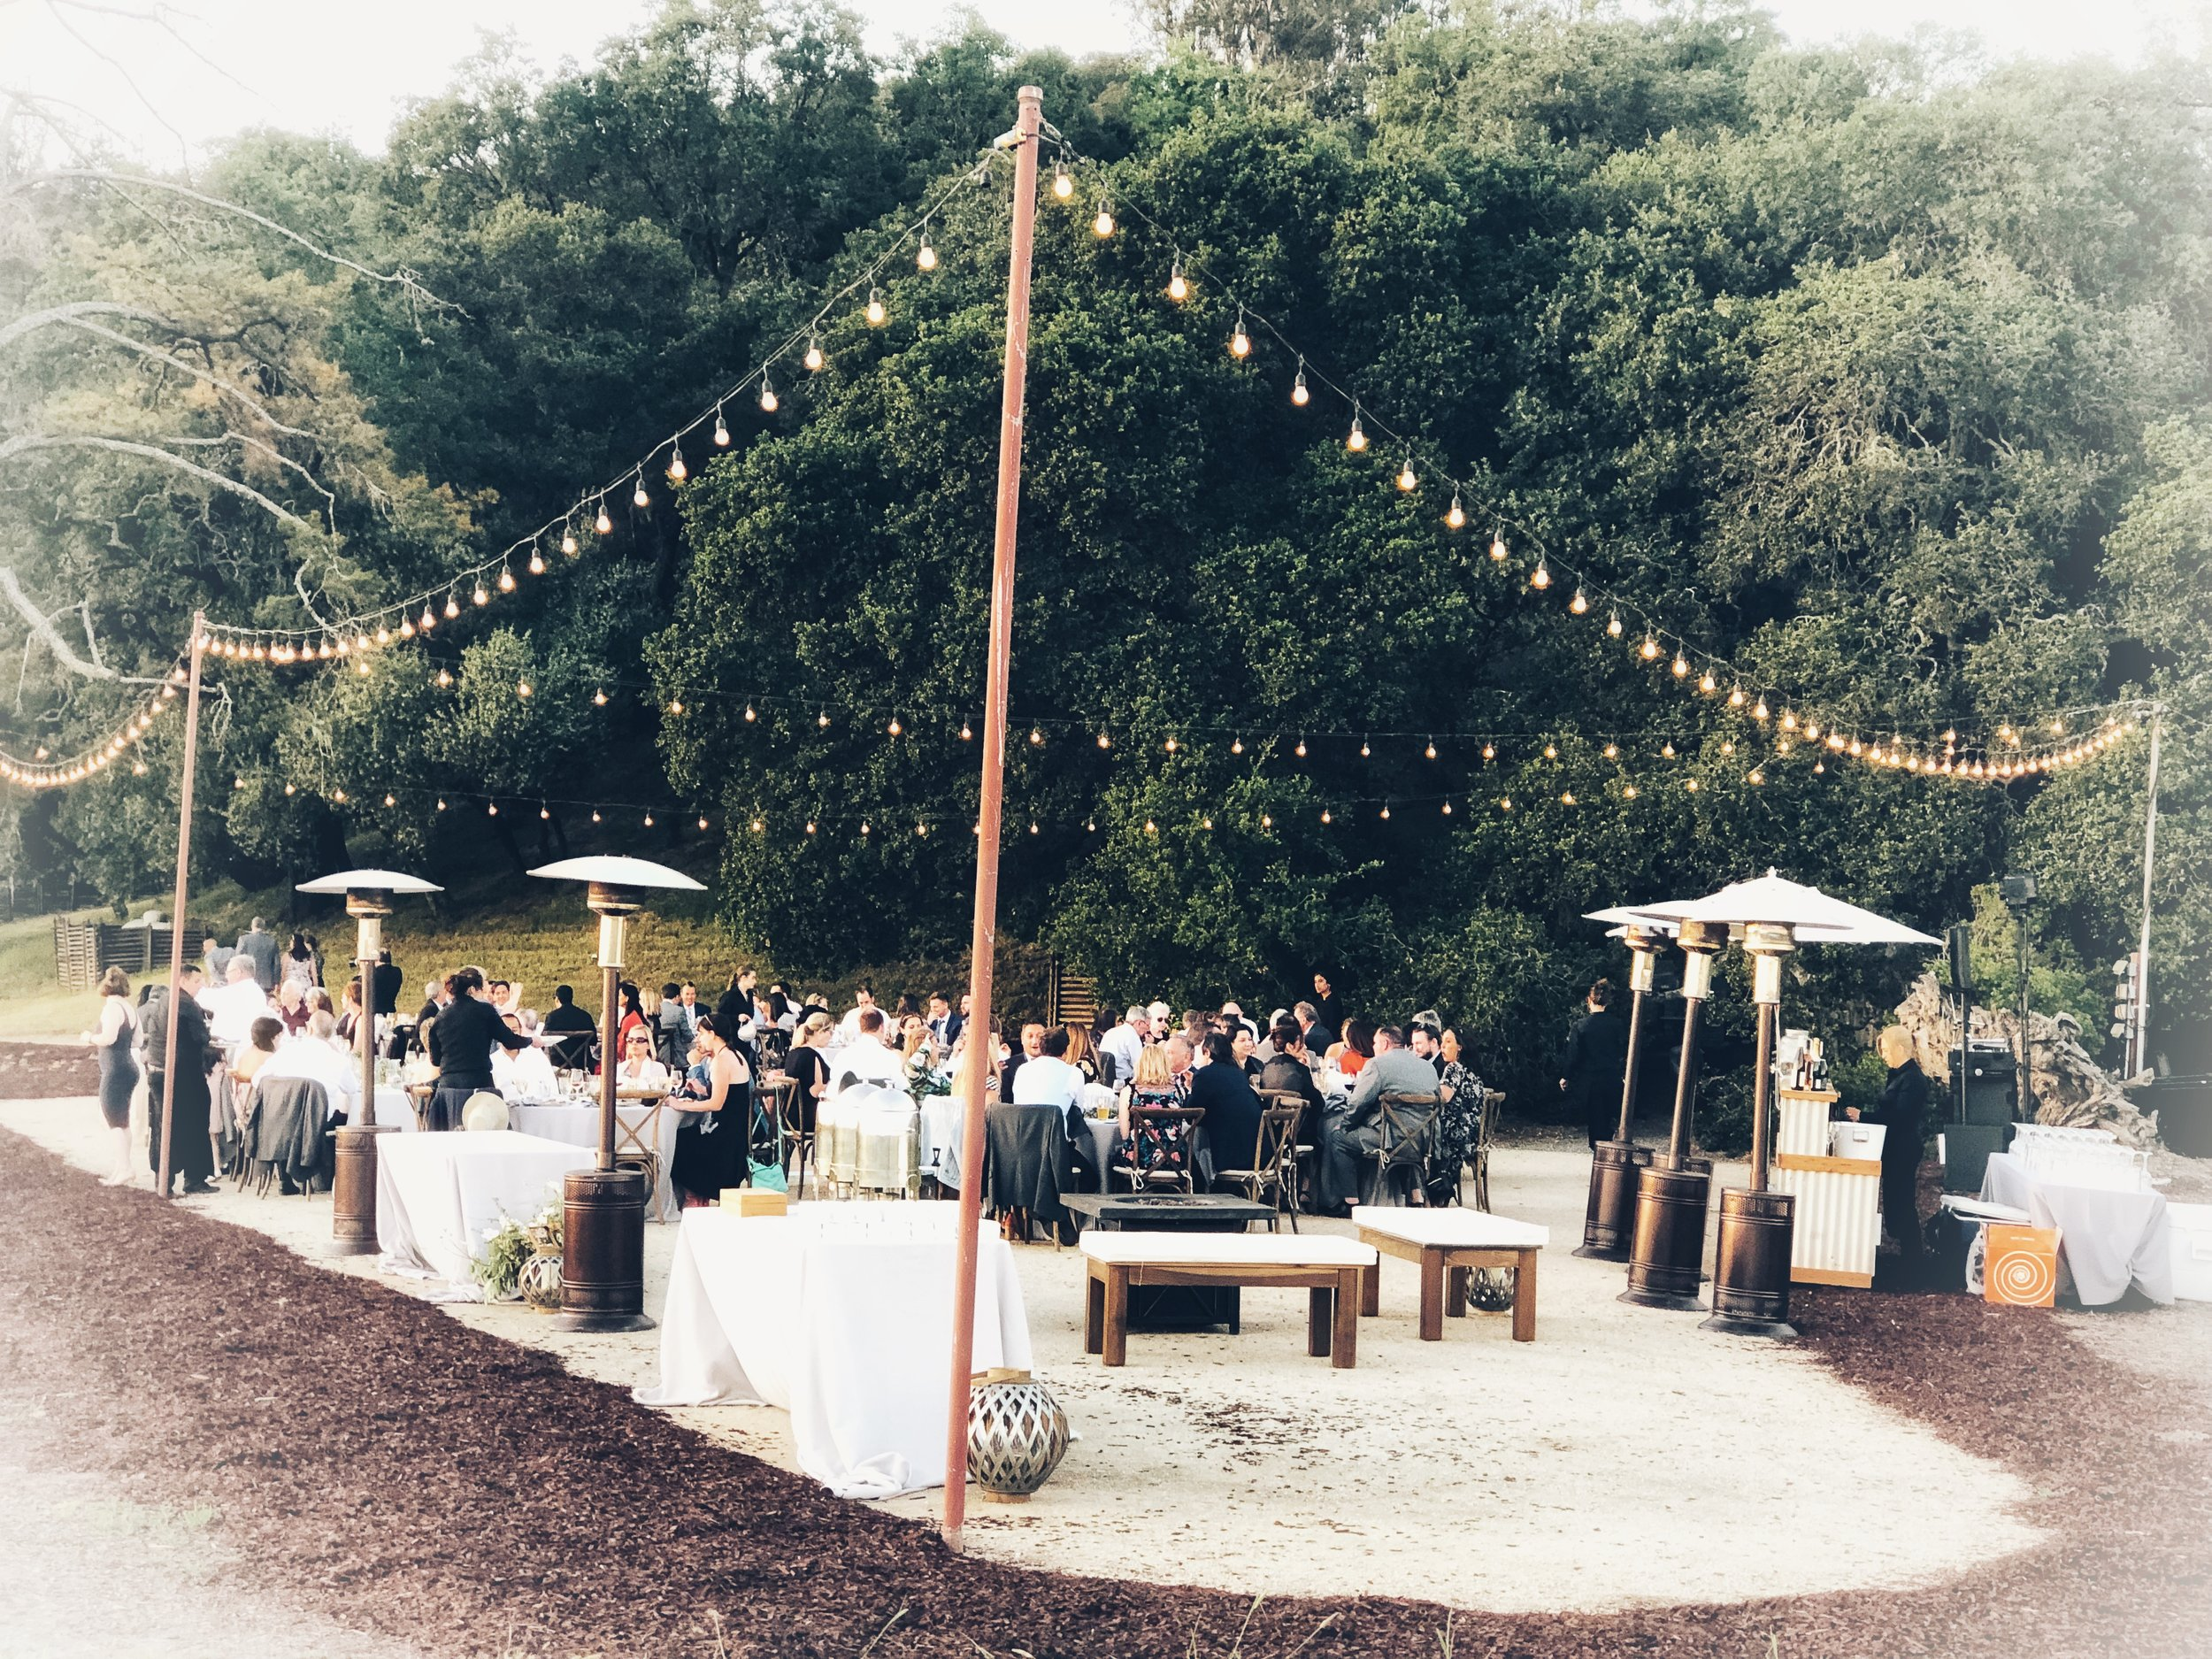 Food Gatherings   We love to bring our community together. We love to take food on the road and feast in magical surroundings - we call it Pirate Dining. Join us for magical nights under the stars - music in the vineyards + the best vistas Sonoma County has to offer